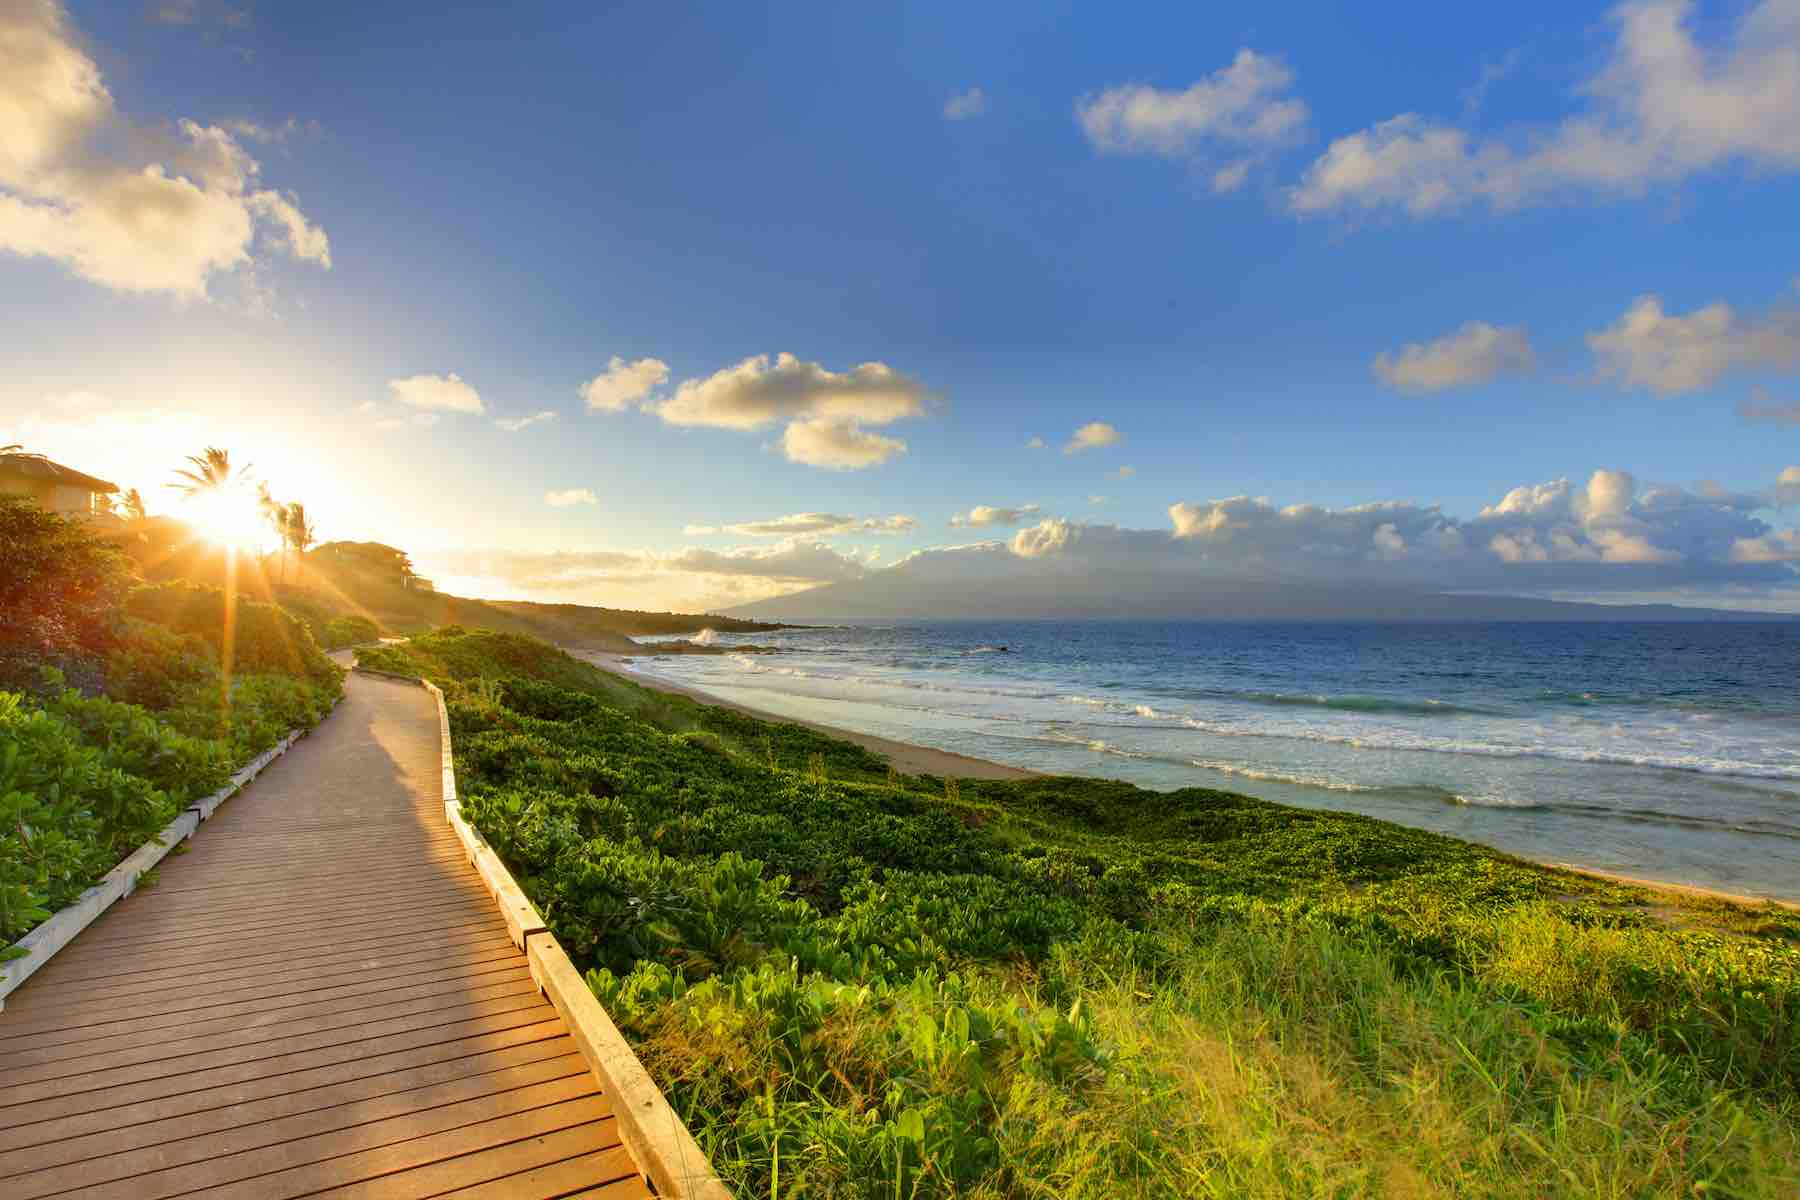 Find out the best cheap things to do on Maui on a budget by top Hawaii blog Hawaii Travel with Kids. Image of the Oneloa Beach Pathway on Maui with the ocean in the background.